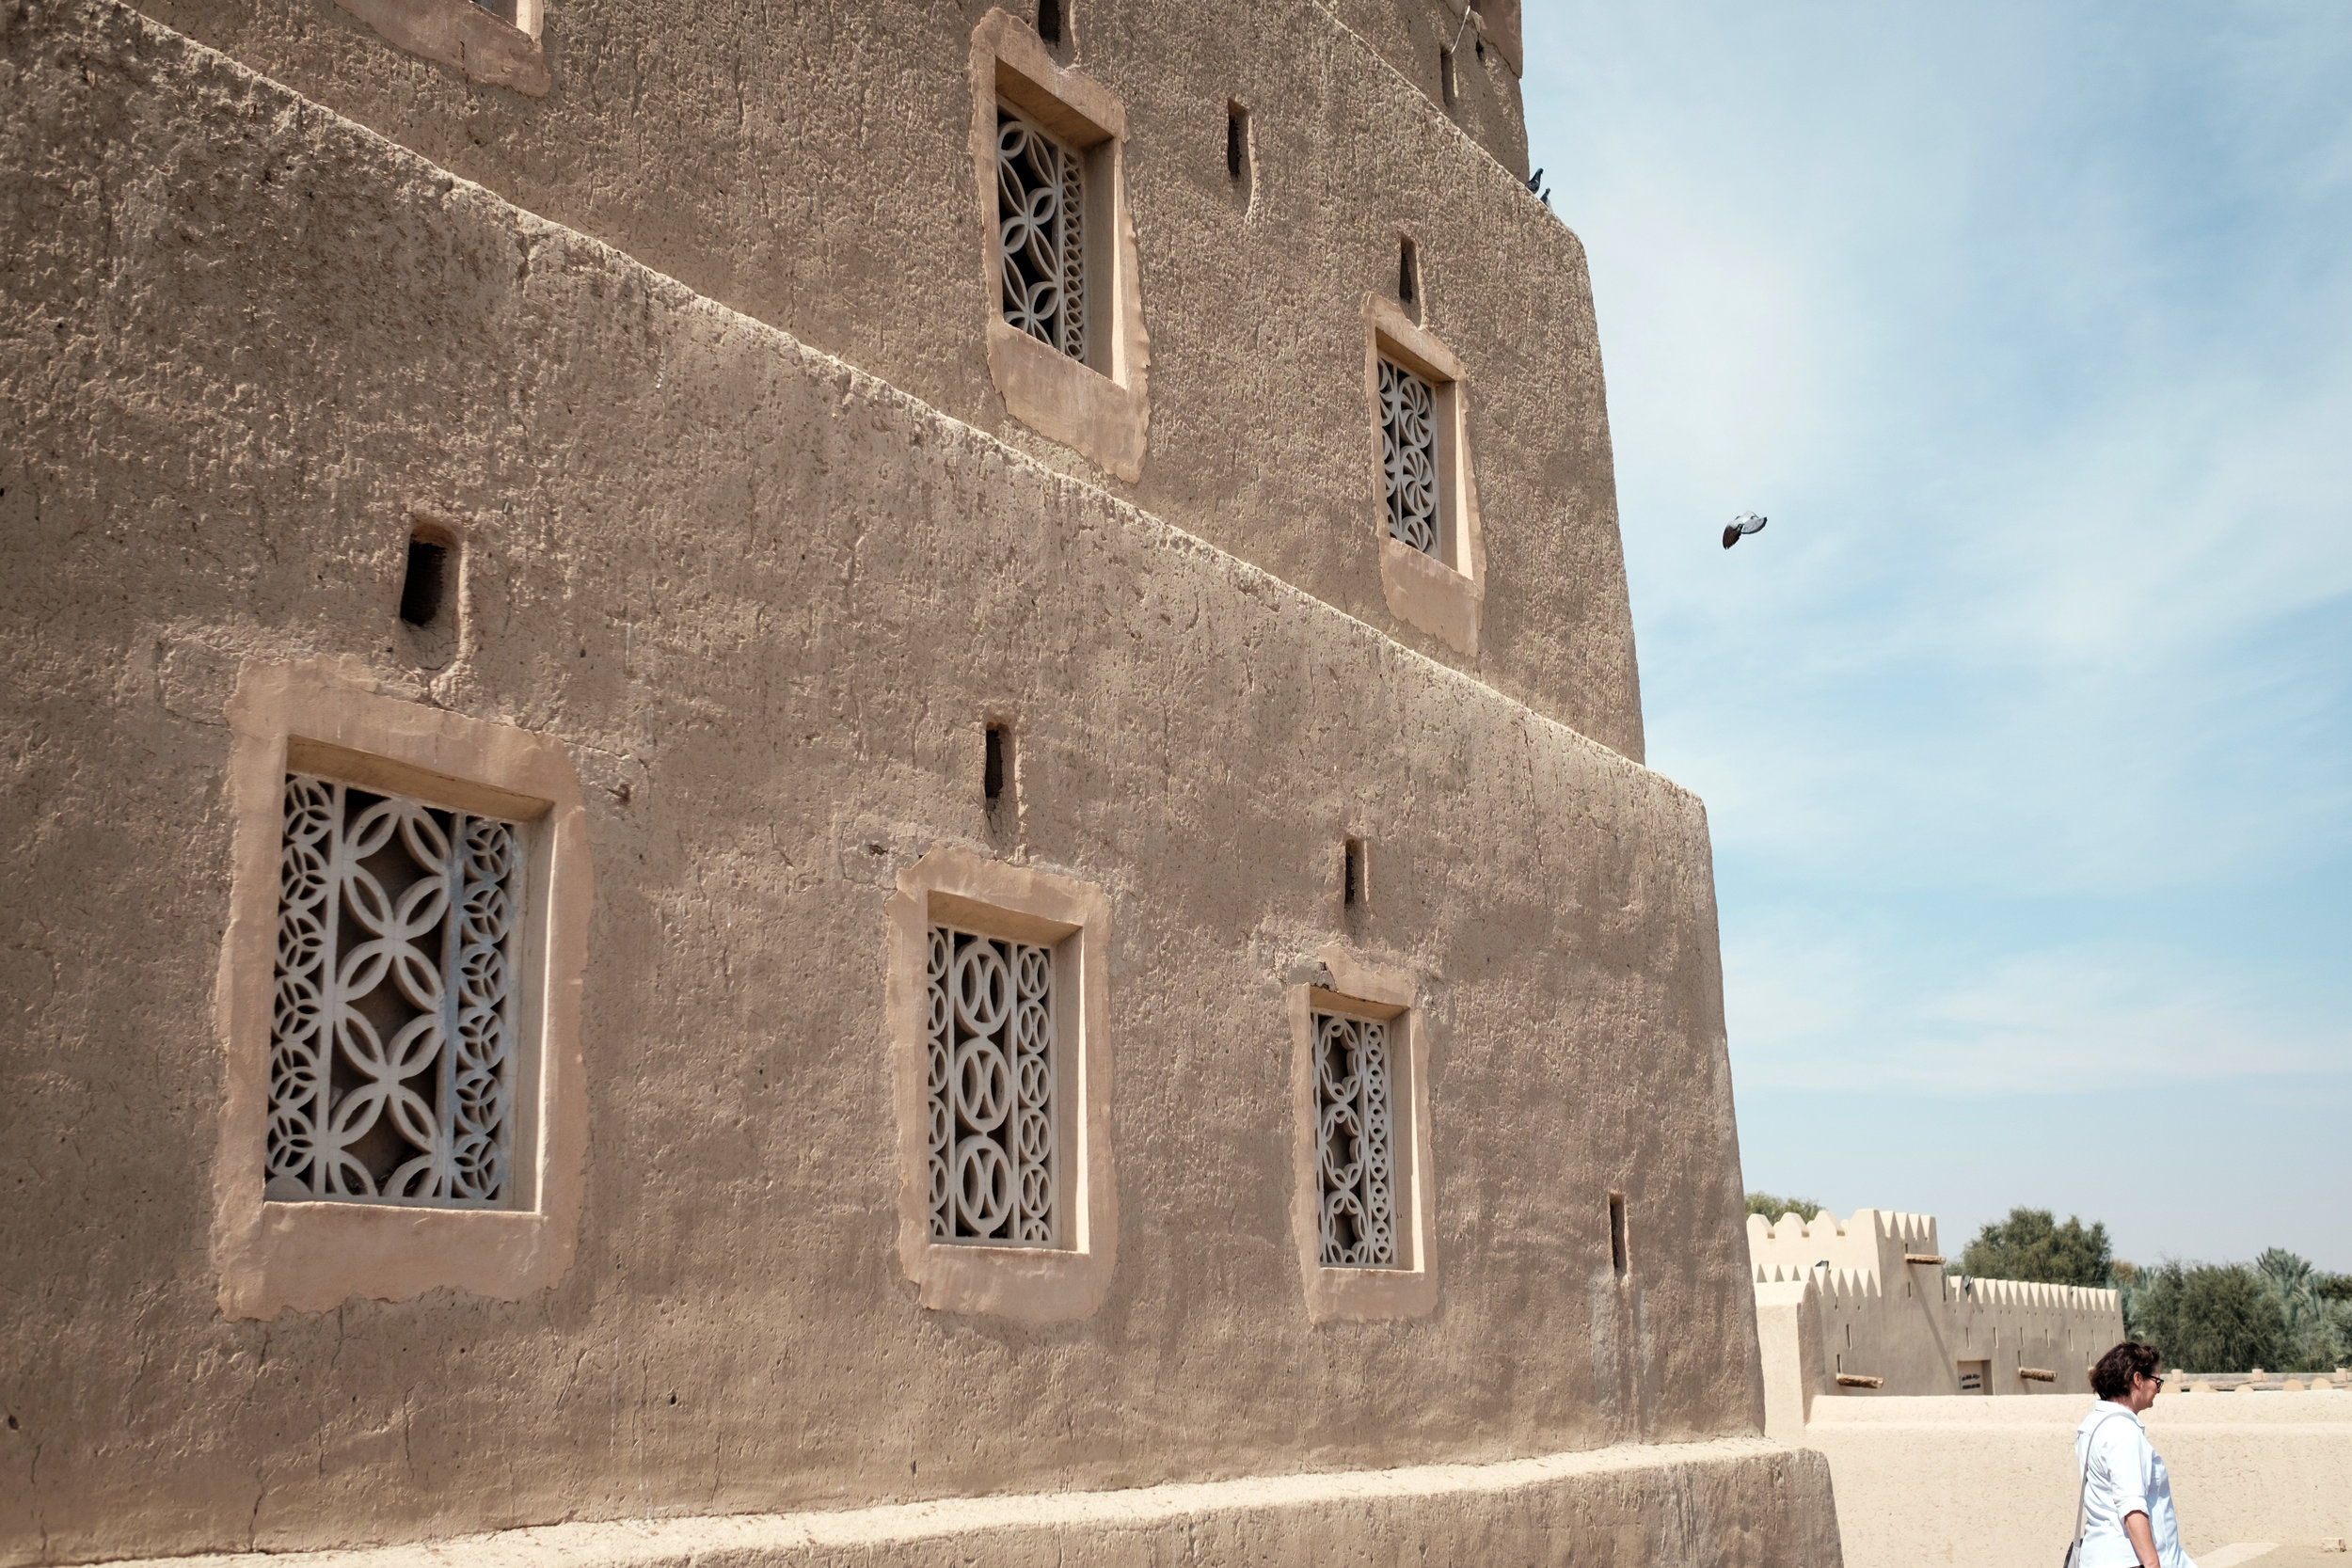 The fort at Al Qattara Arts Centre